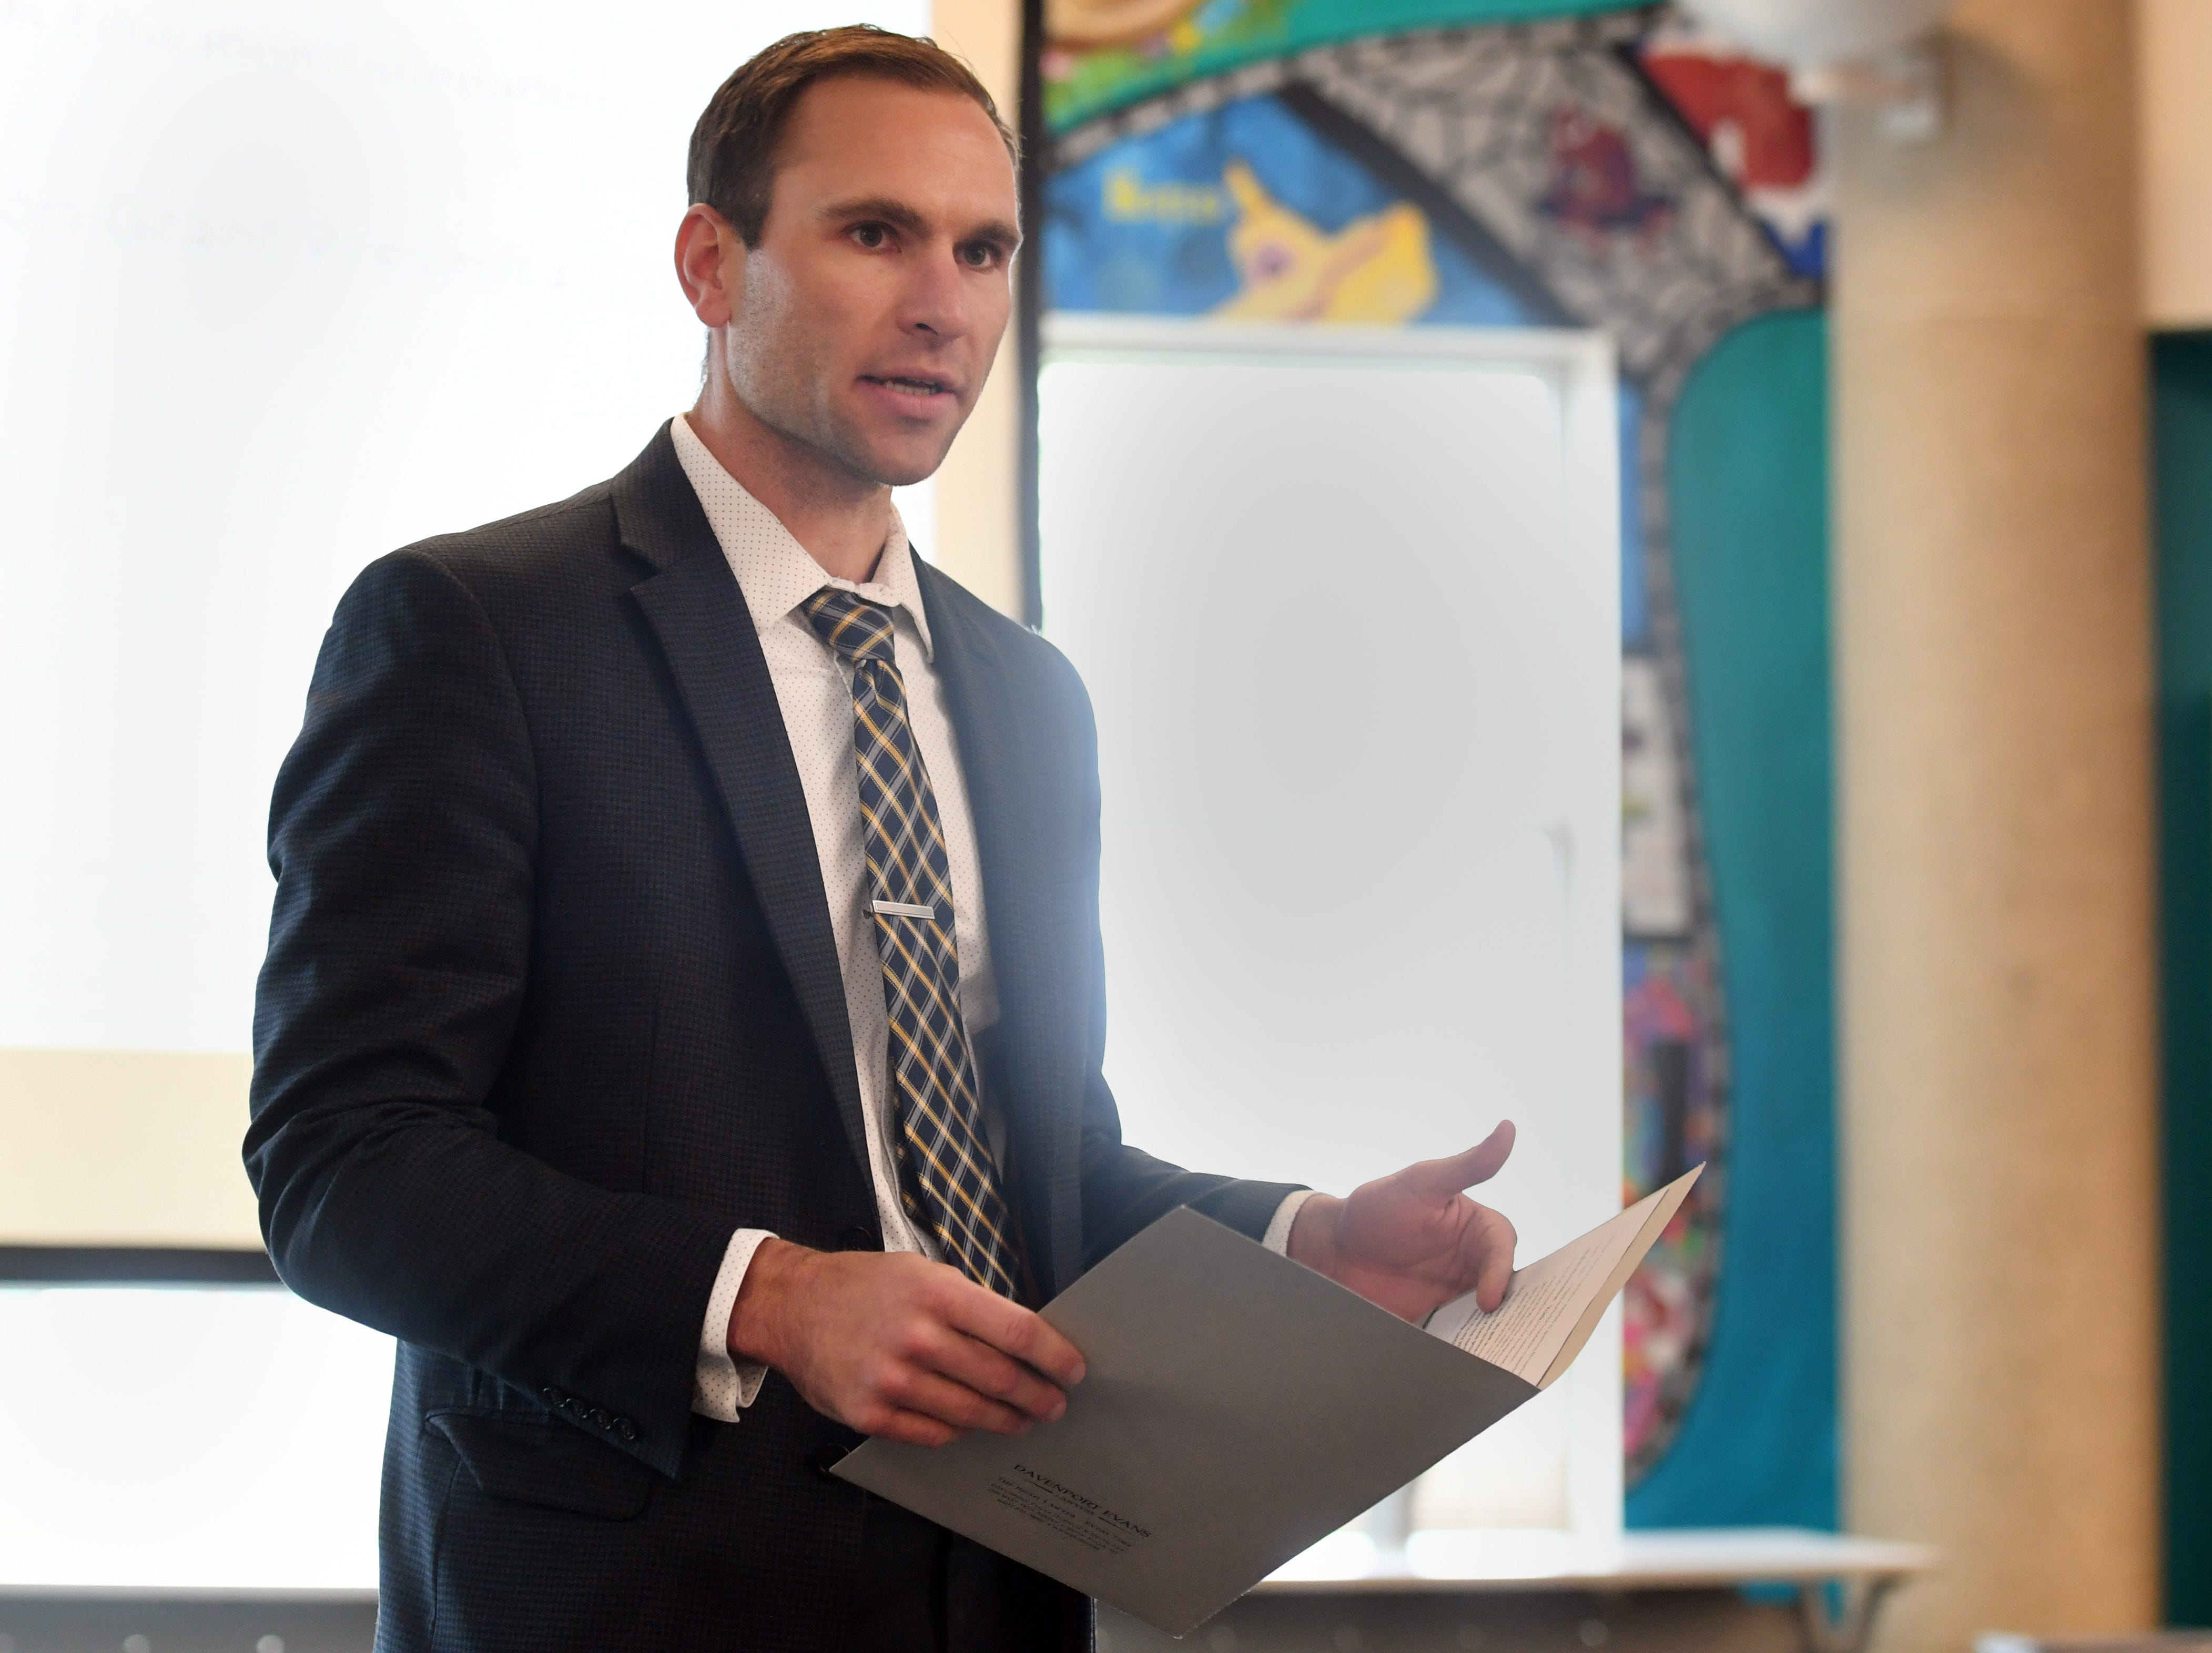 Reece Almond presents Innovation in Education grants from the Sioux Falls Public School Education Foundation on Wednesday, May 8, at Washington High School.